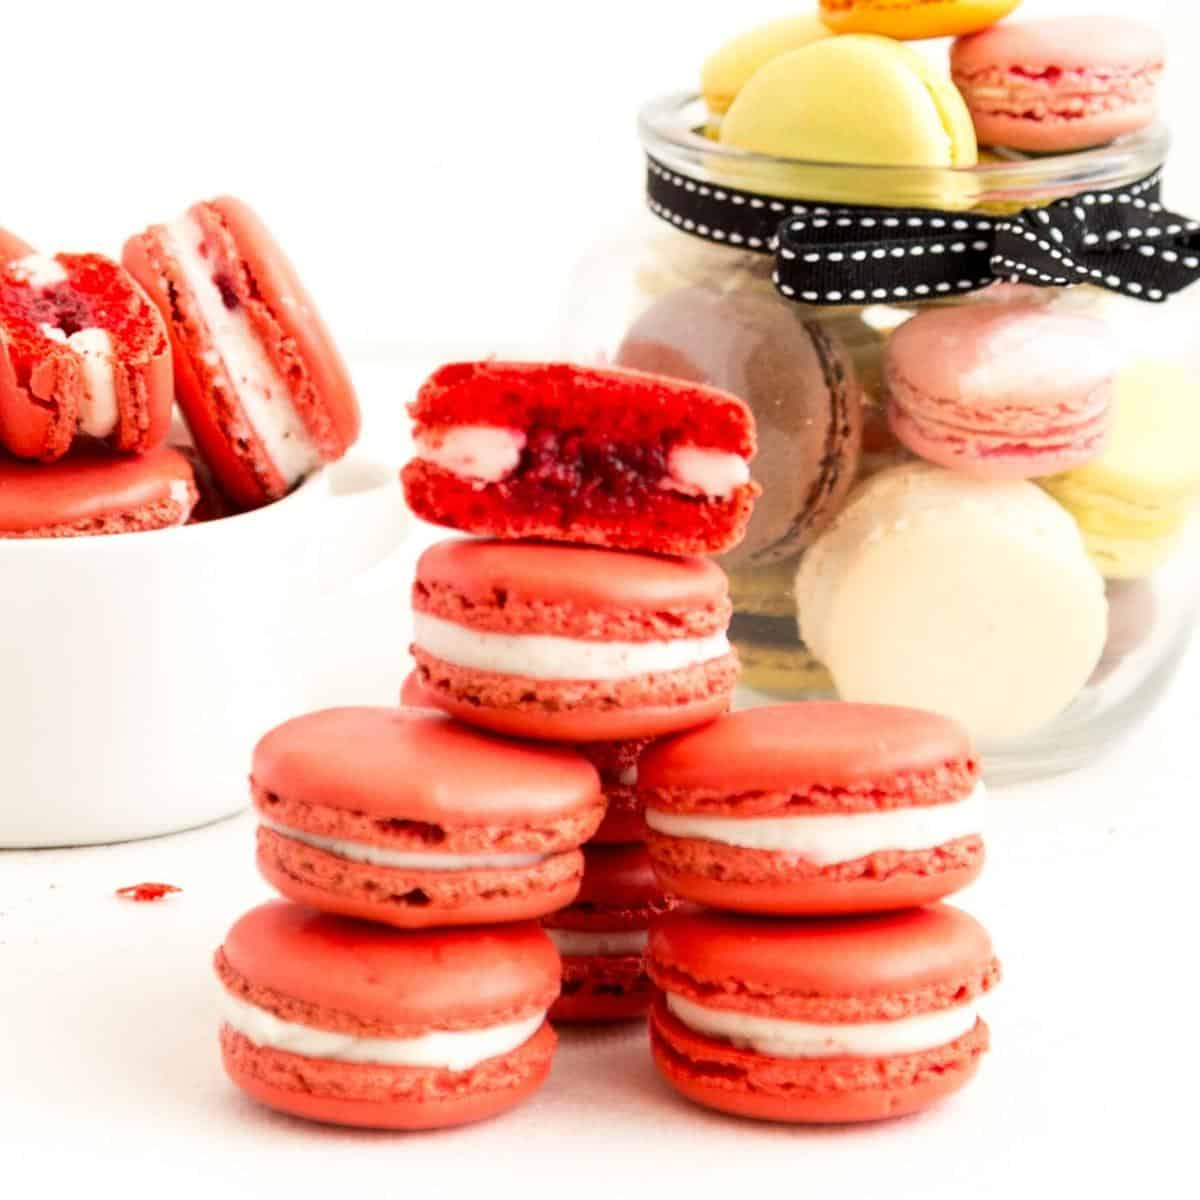 A stack of macarons on a white table